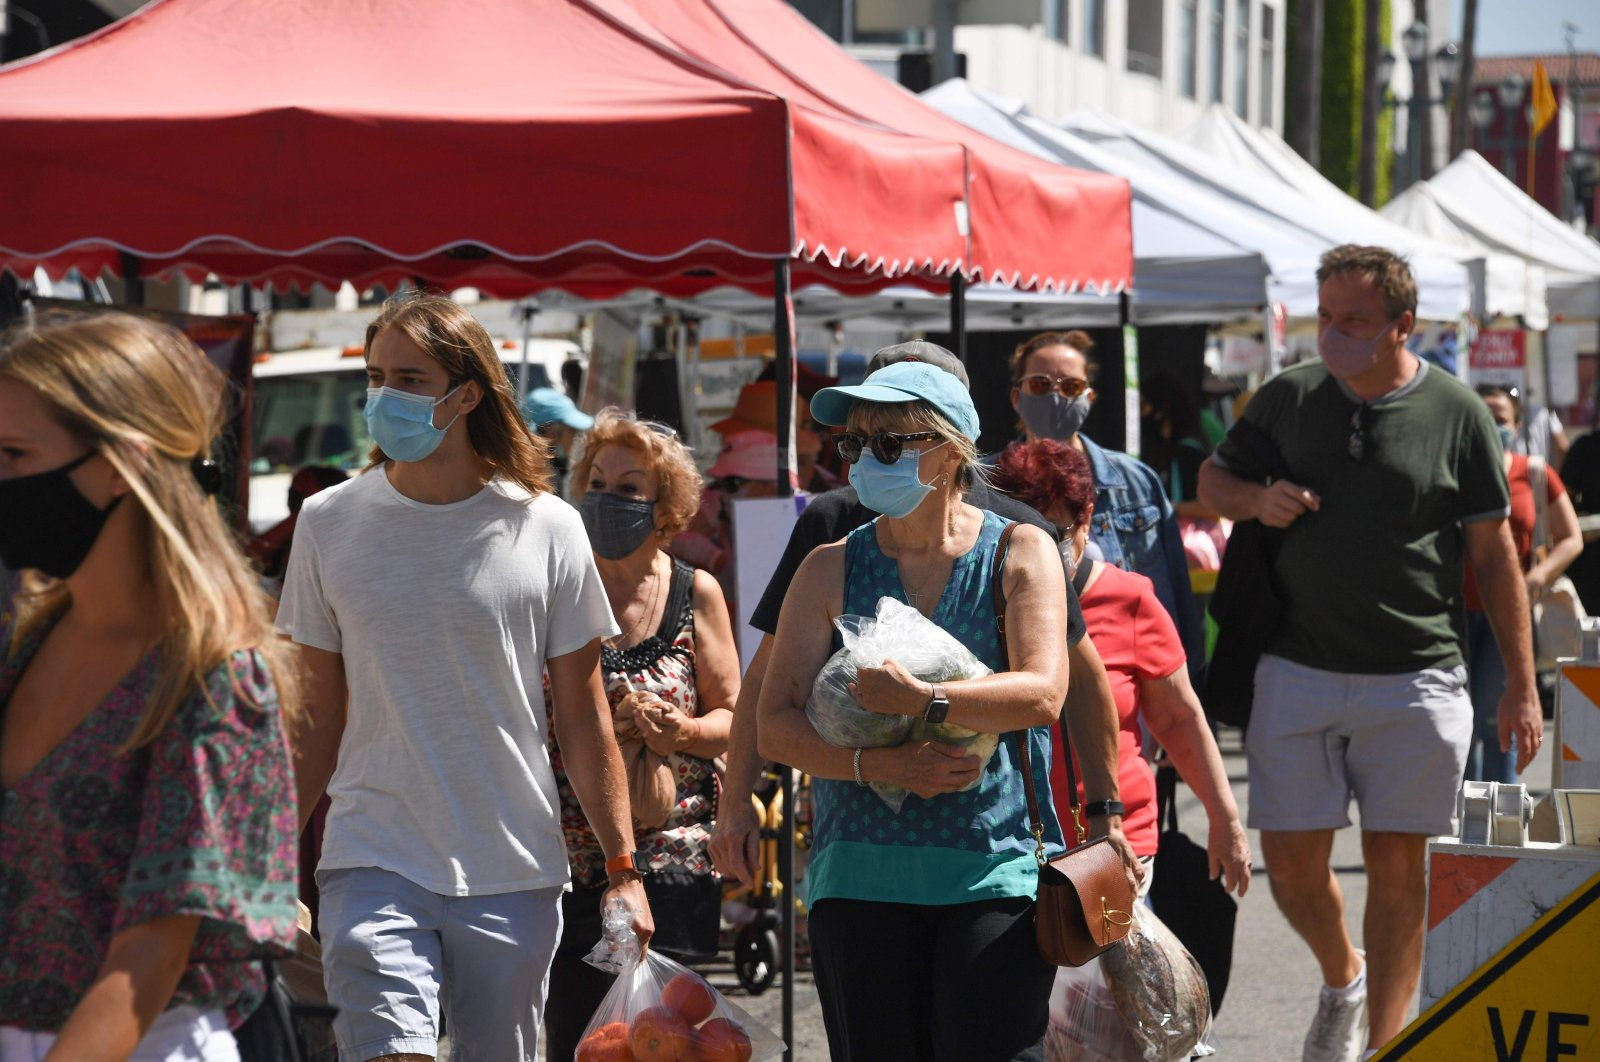 People wearing face coverings shop for fresh fruit, vegetables, flowers and meat at the Santa Monica Farmers' Market, Santa Monica, C.A., Aug.1, 2020. (AFP Photo)